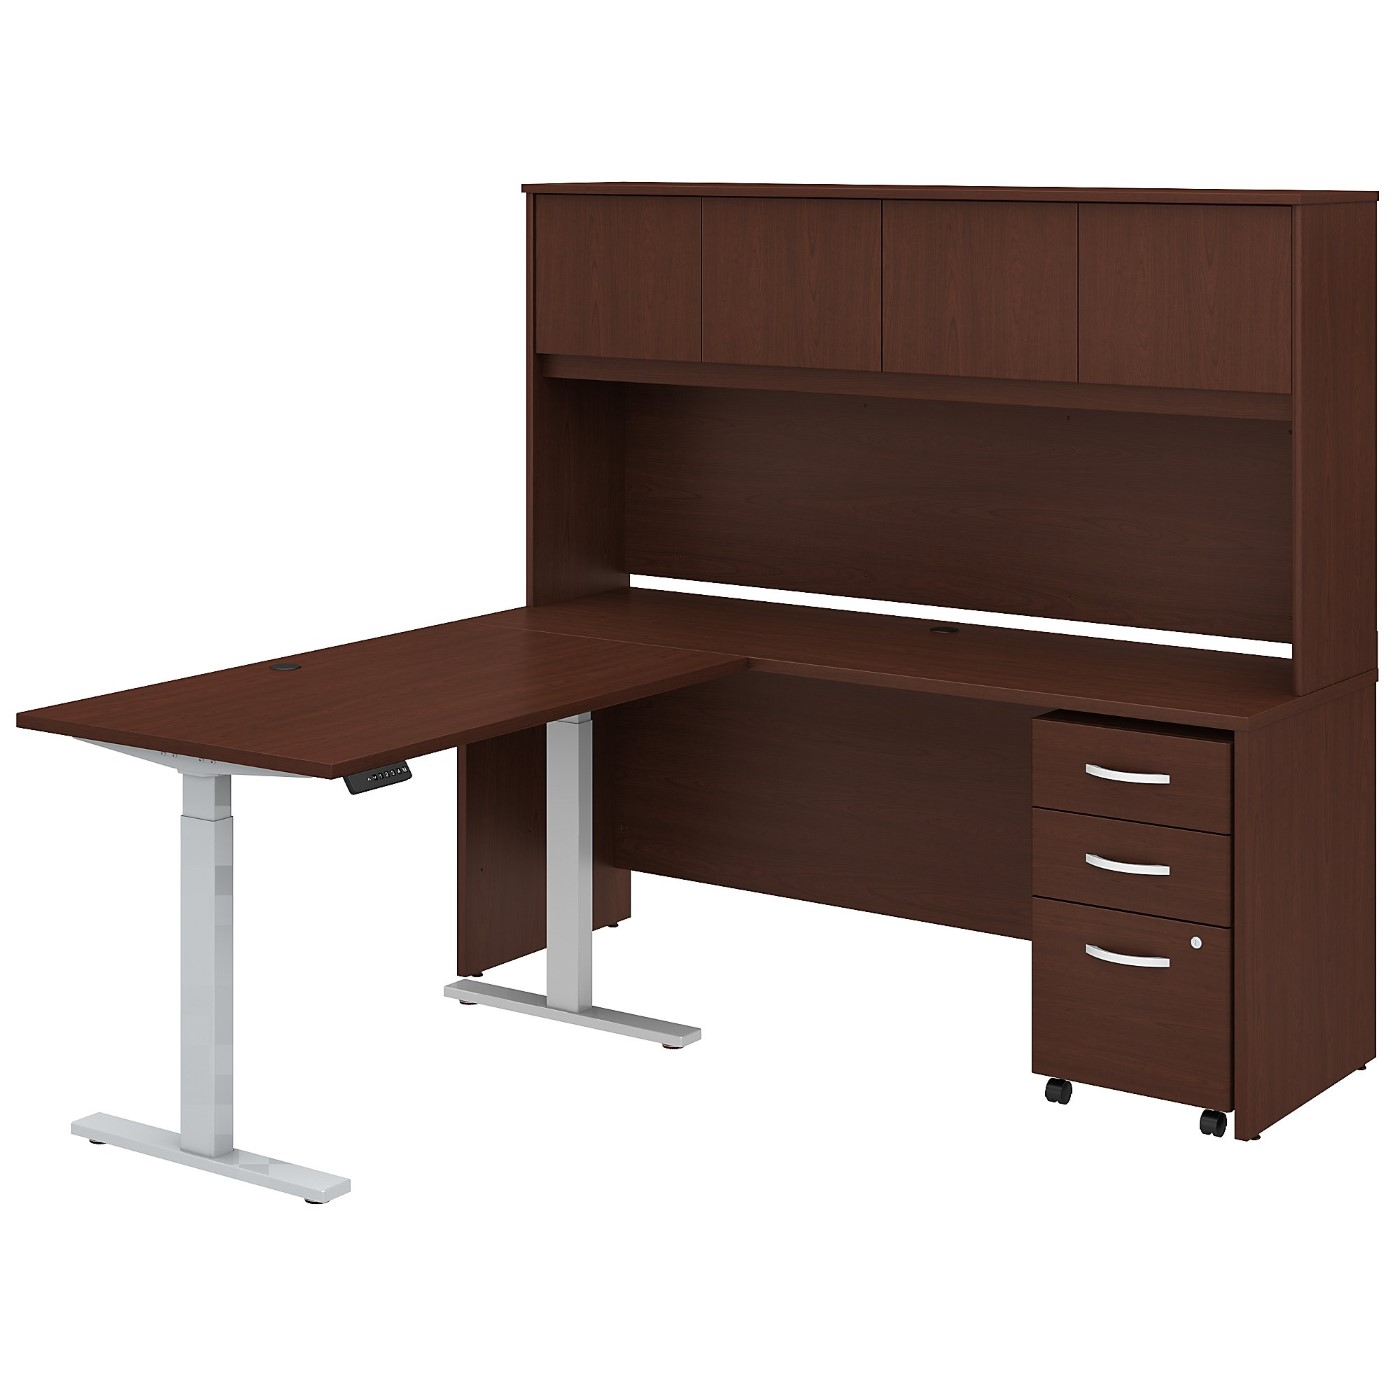 BUSH BUSINESS FURNITURE STUDIO C 72W X 24D L SHAPED DESK WITH HUTCH, 48W HEIGHT ADJUSTABLE RETURN AND STORAGE. FREE SHIPPING